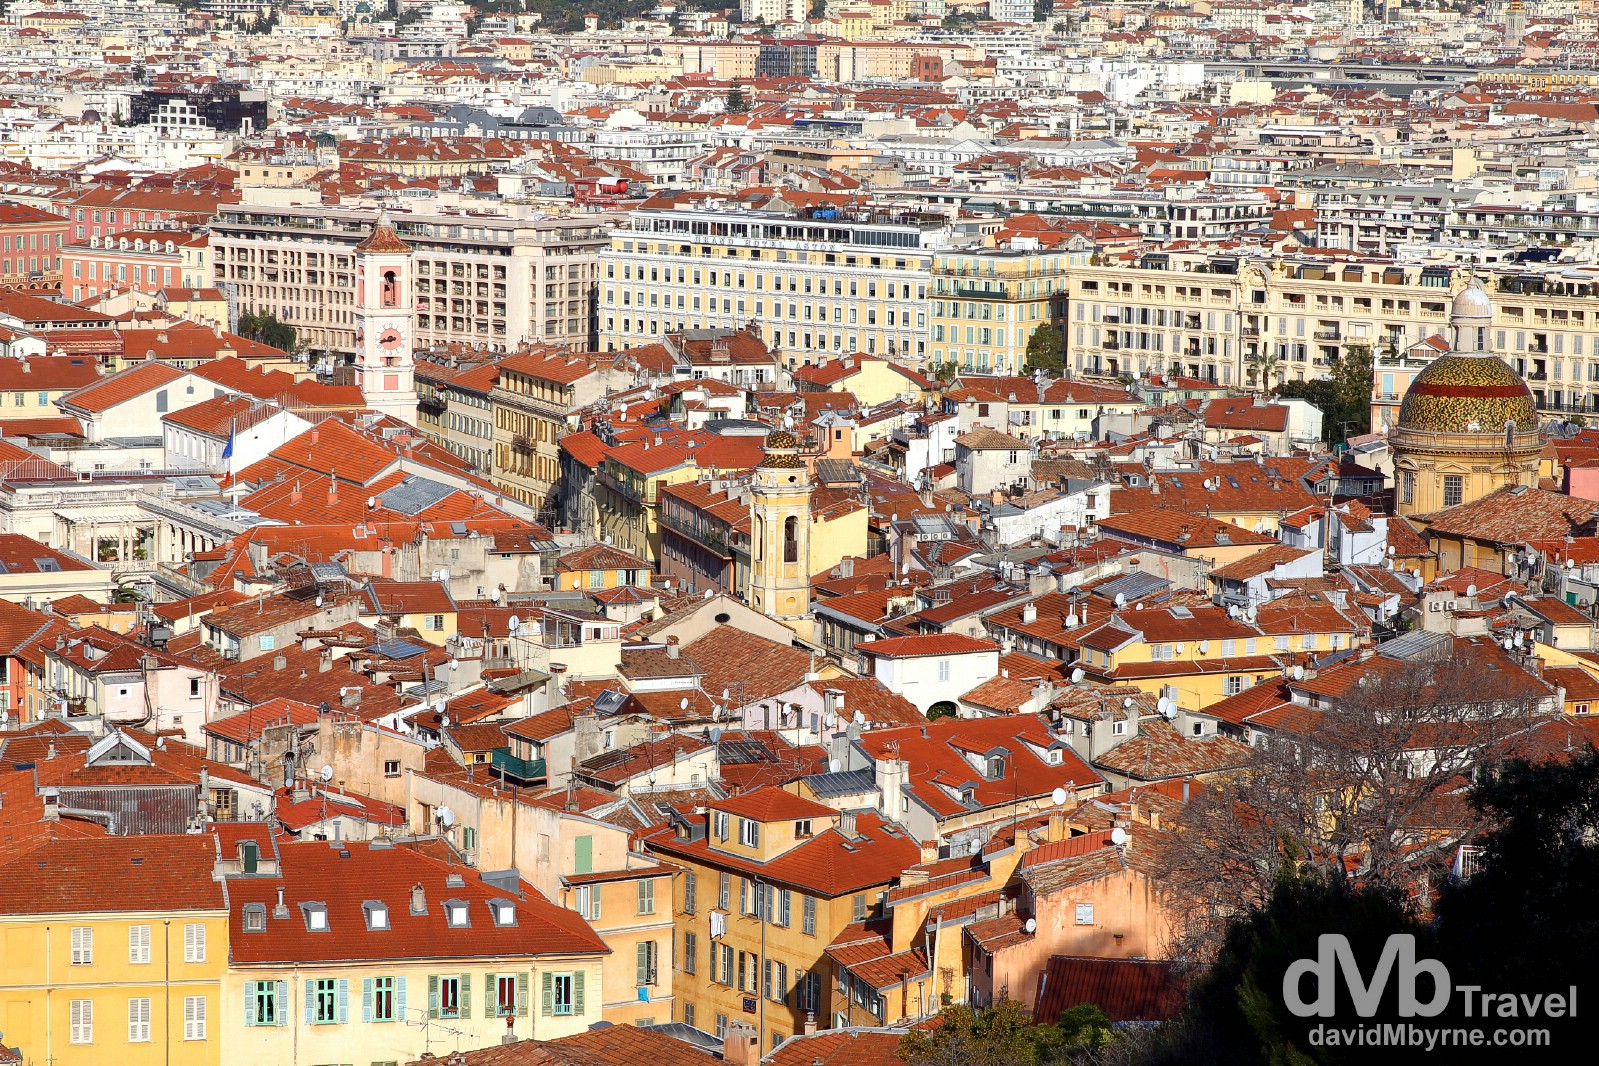 Buildings of Vieux Nice as seen from Parc du Chateau, Nice, Côte d'Azur, France. March 14, 2014.